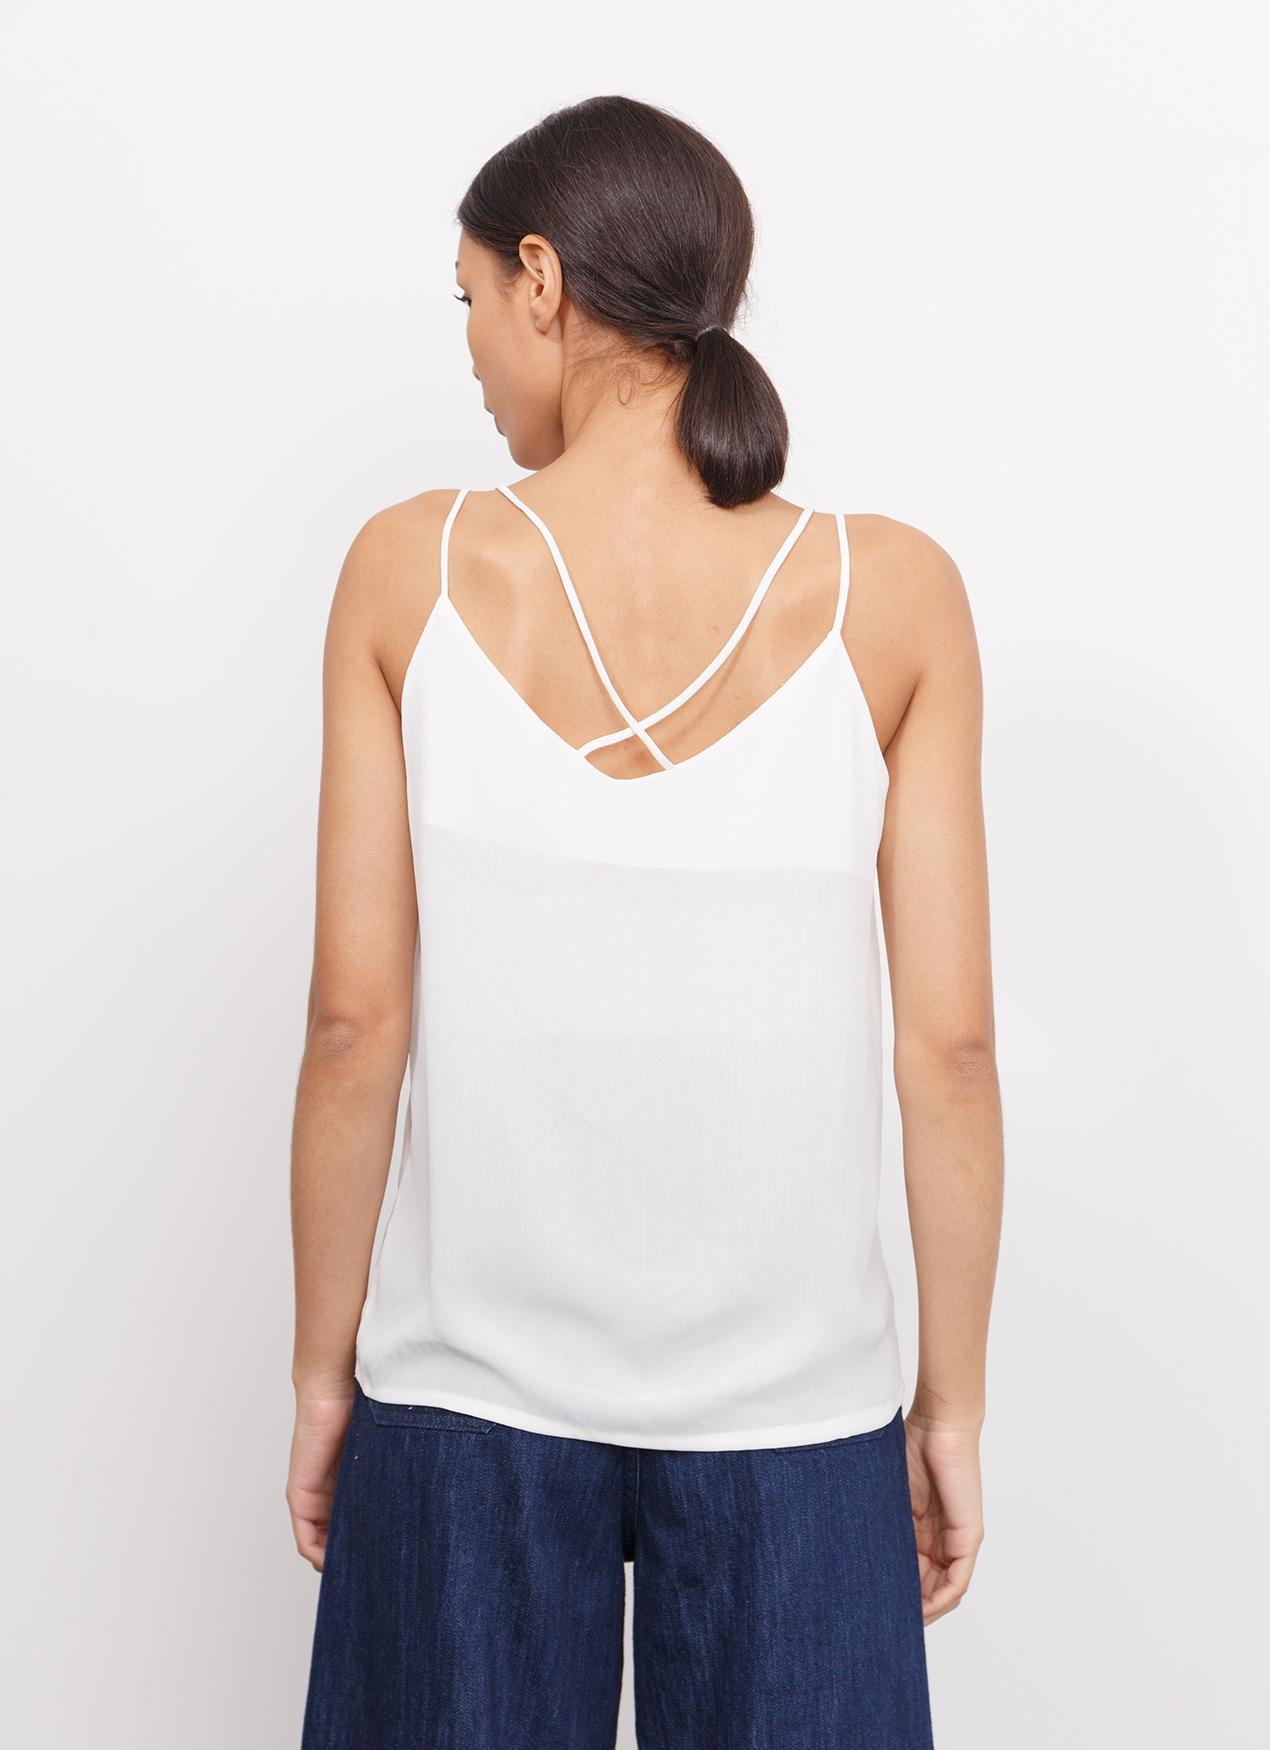 BOWN Freya Top - White